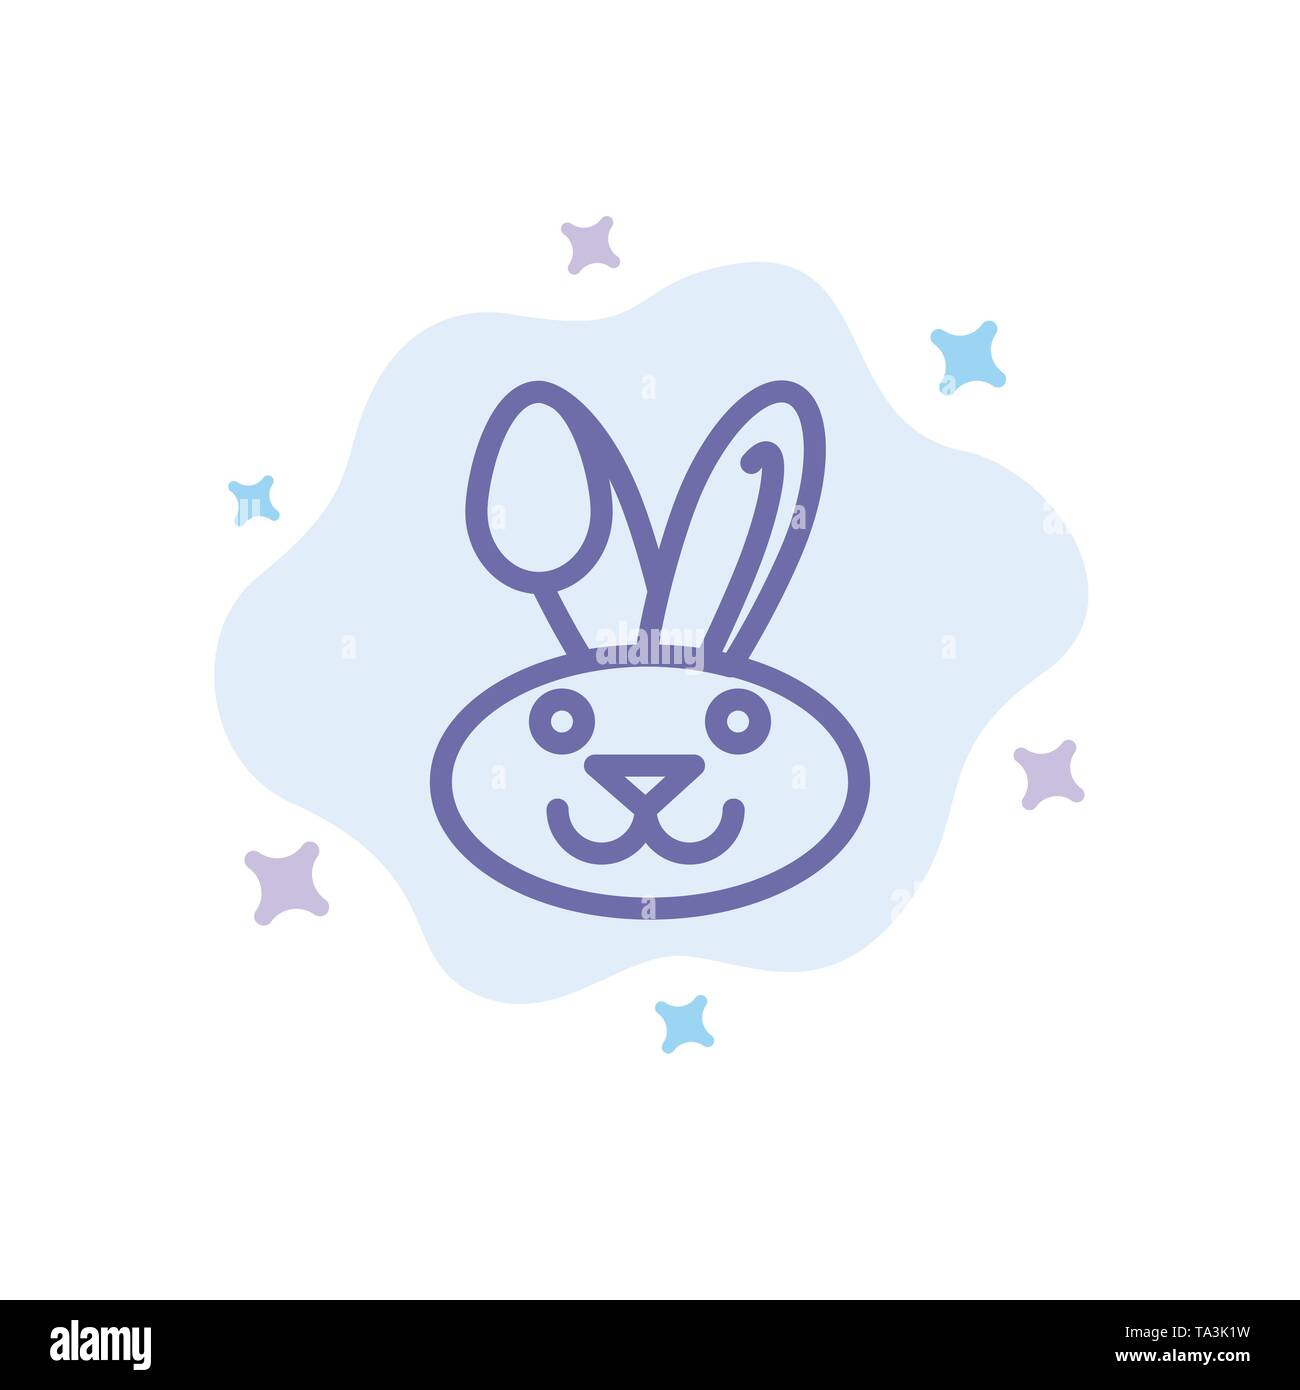 Bunny, Easter, Rabbit Blue Icon on Abstract Cloud Background - Stock Image